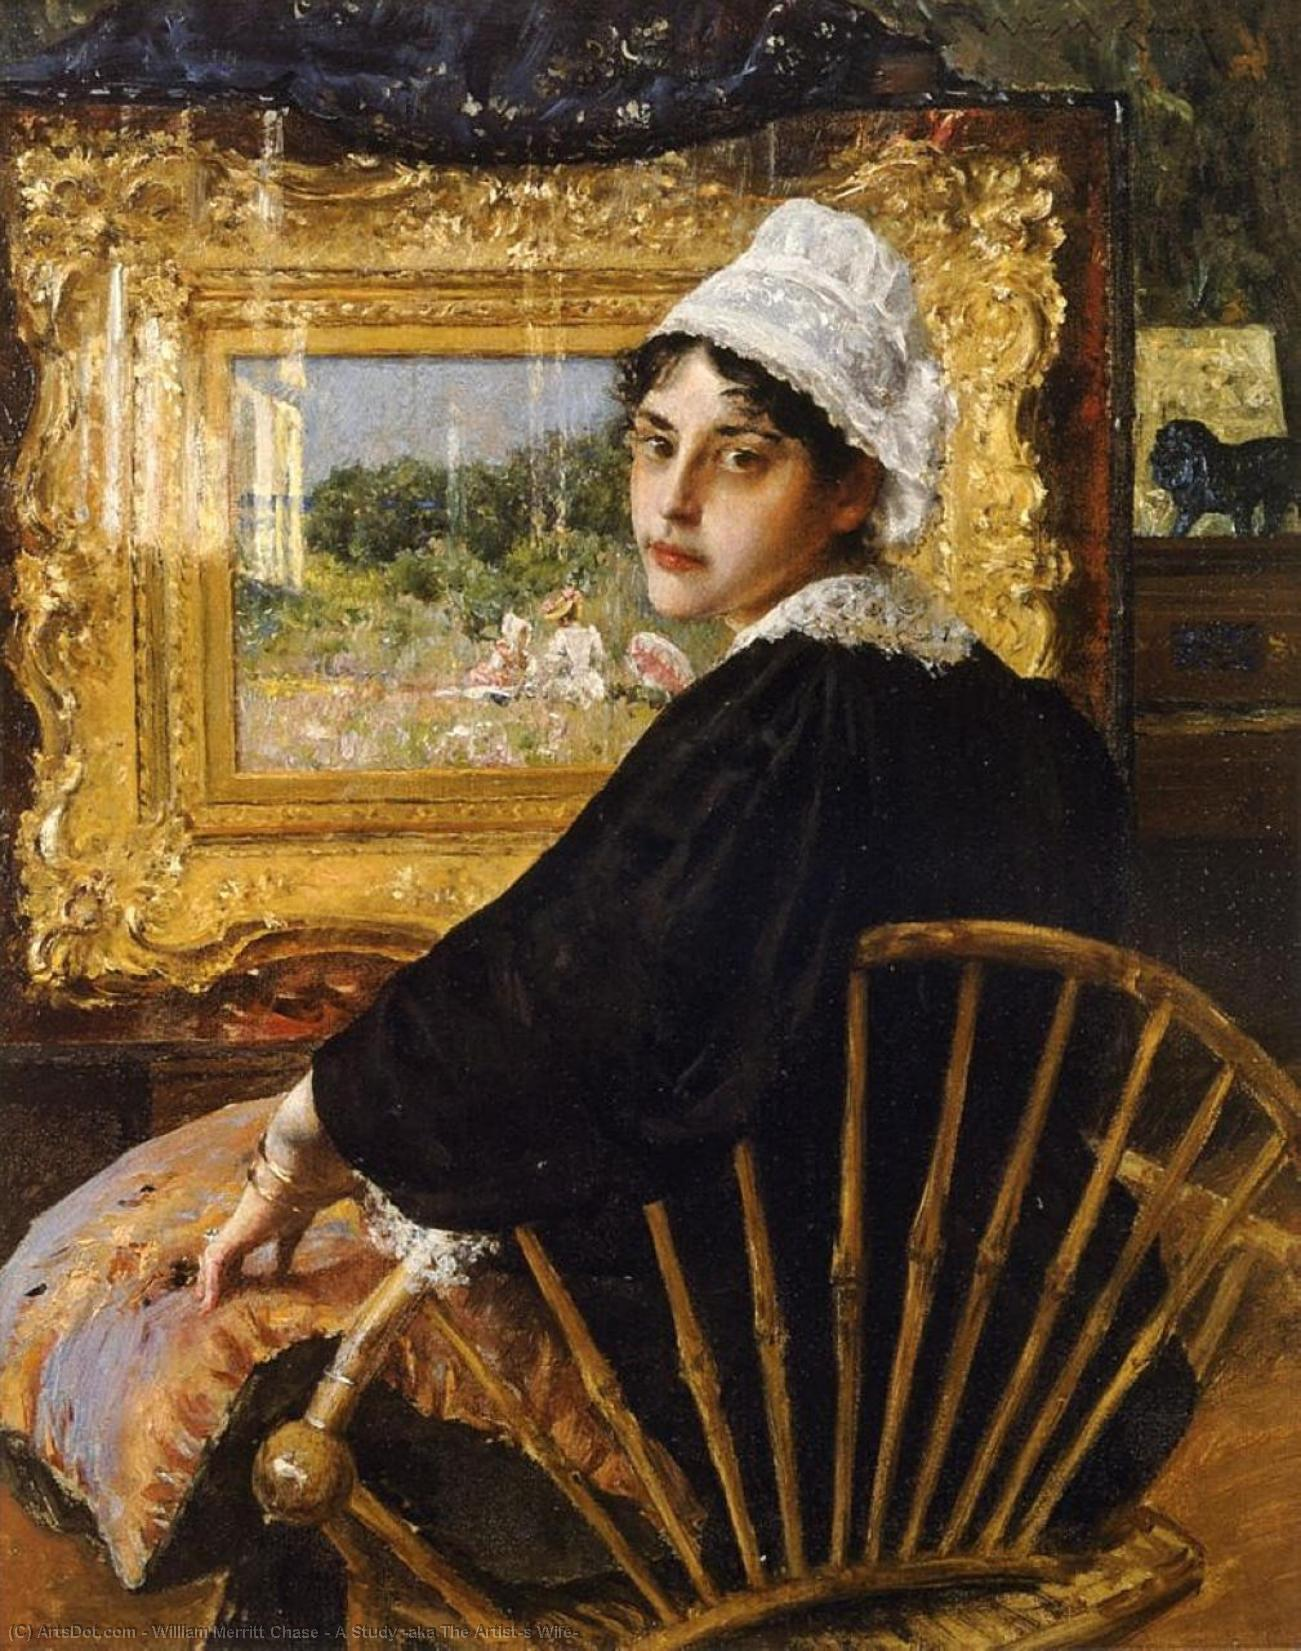 Wikioo.org - The Encyclopedia of Fine Arts - Painting, Artwork by William Merritt Chase - A Study (aka The Artist's Wife)